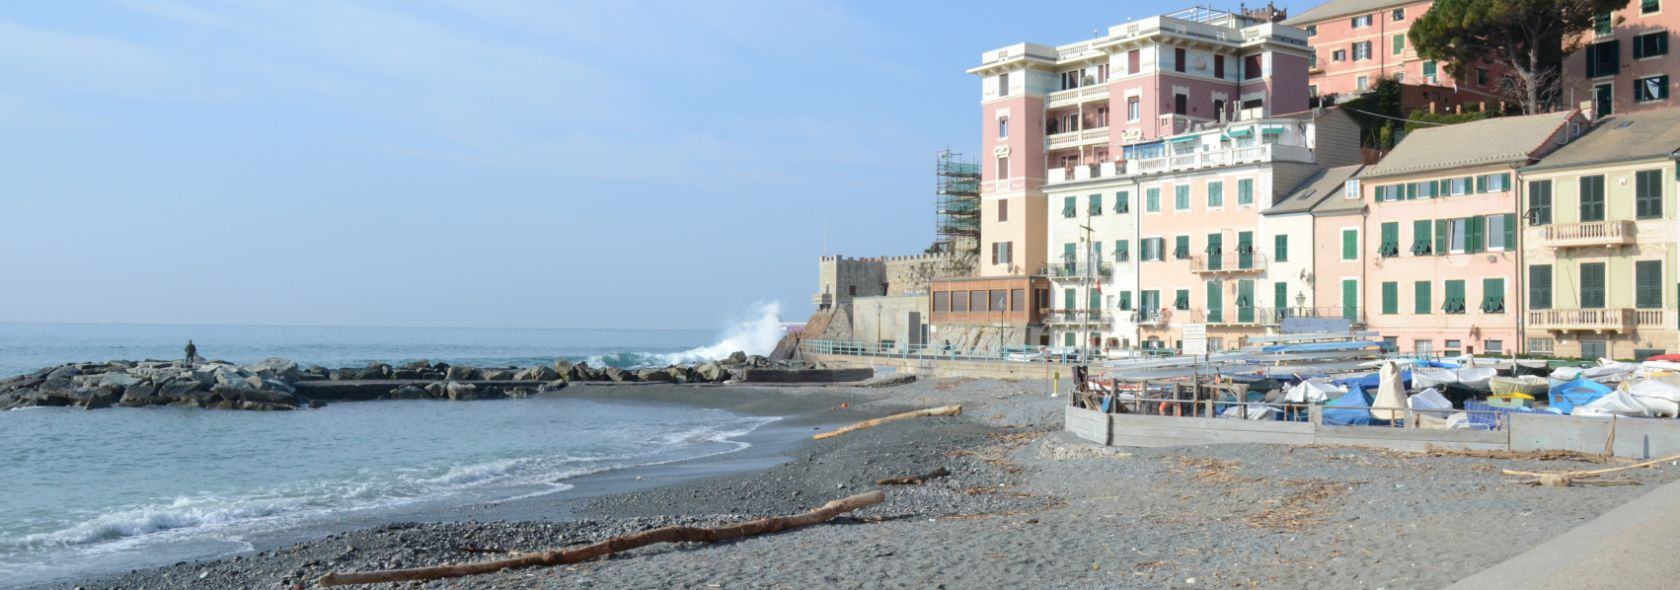 The sea and its beaches: Sturla